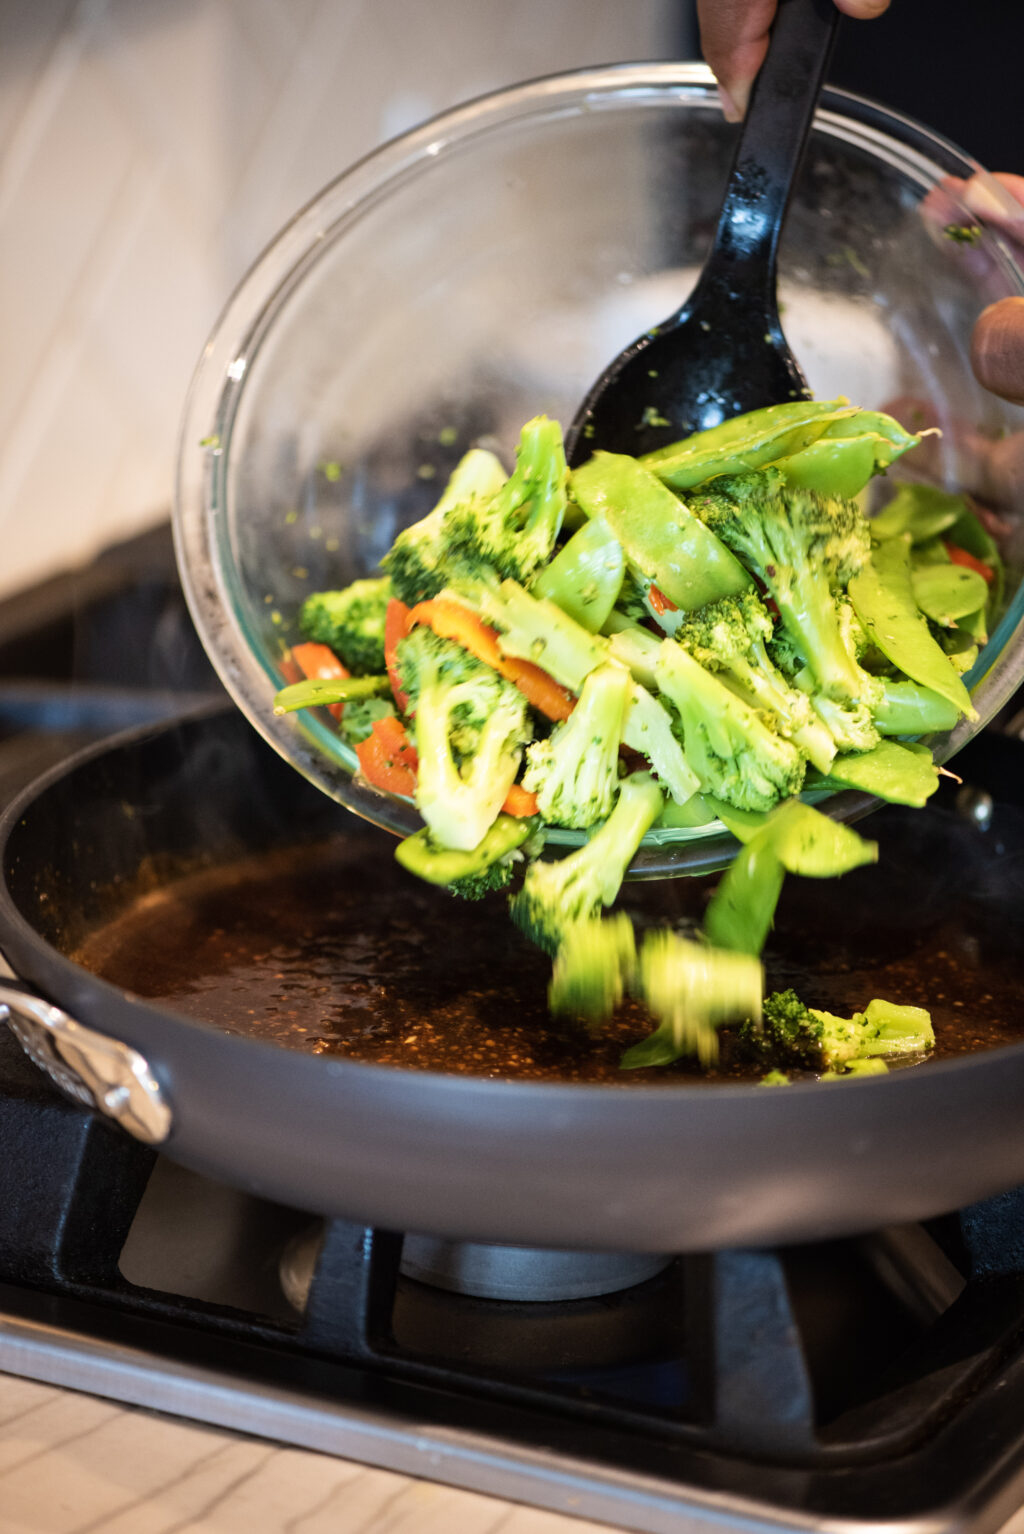 Adding fresh vegetables to pan